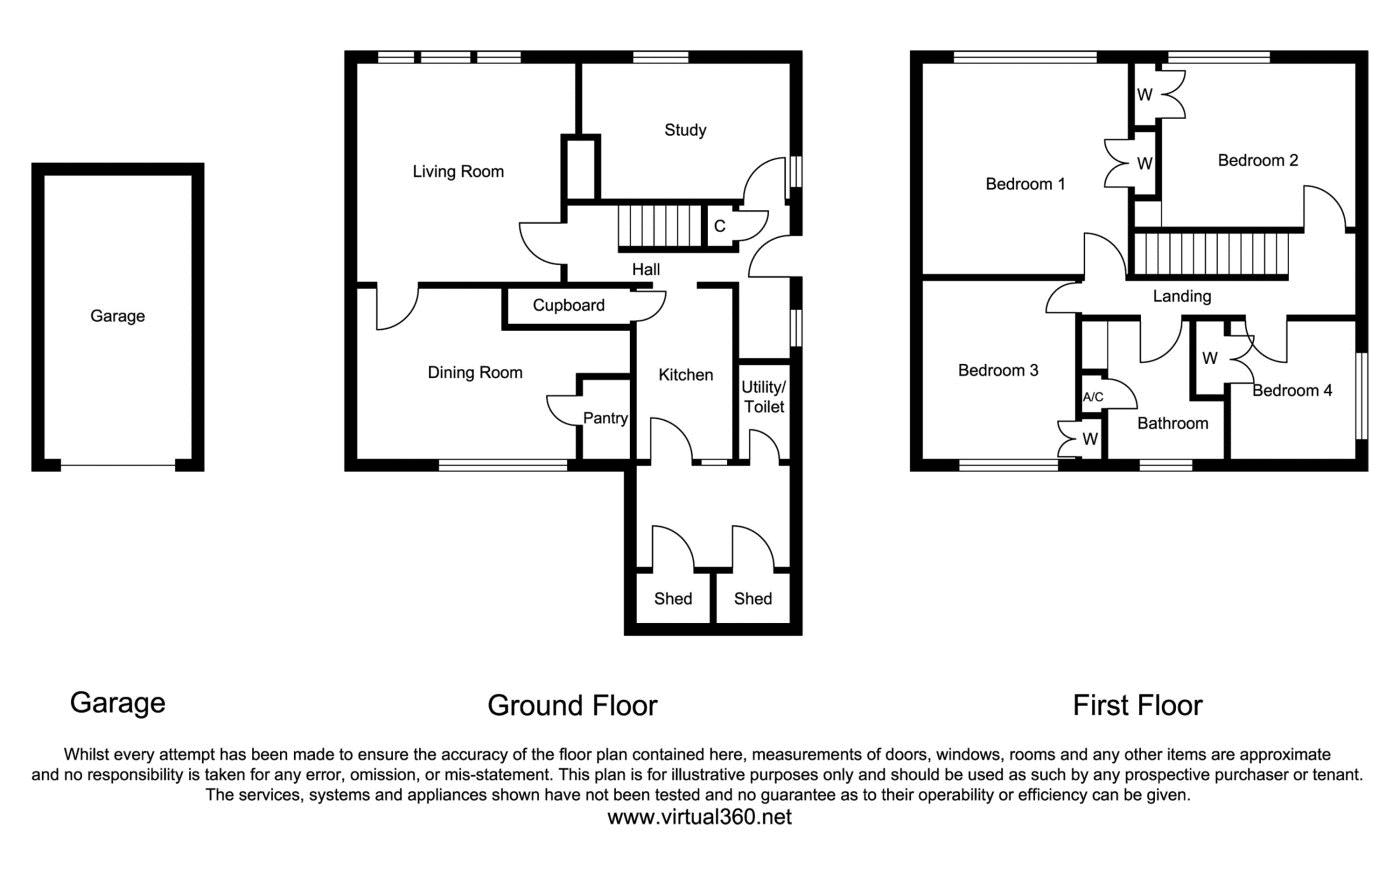 Brinsley Road, Birmingham floor plan